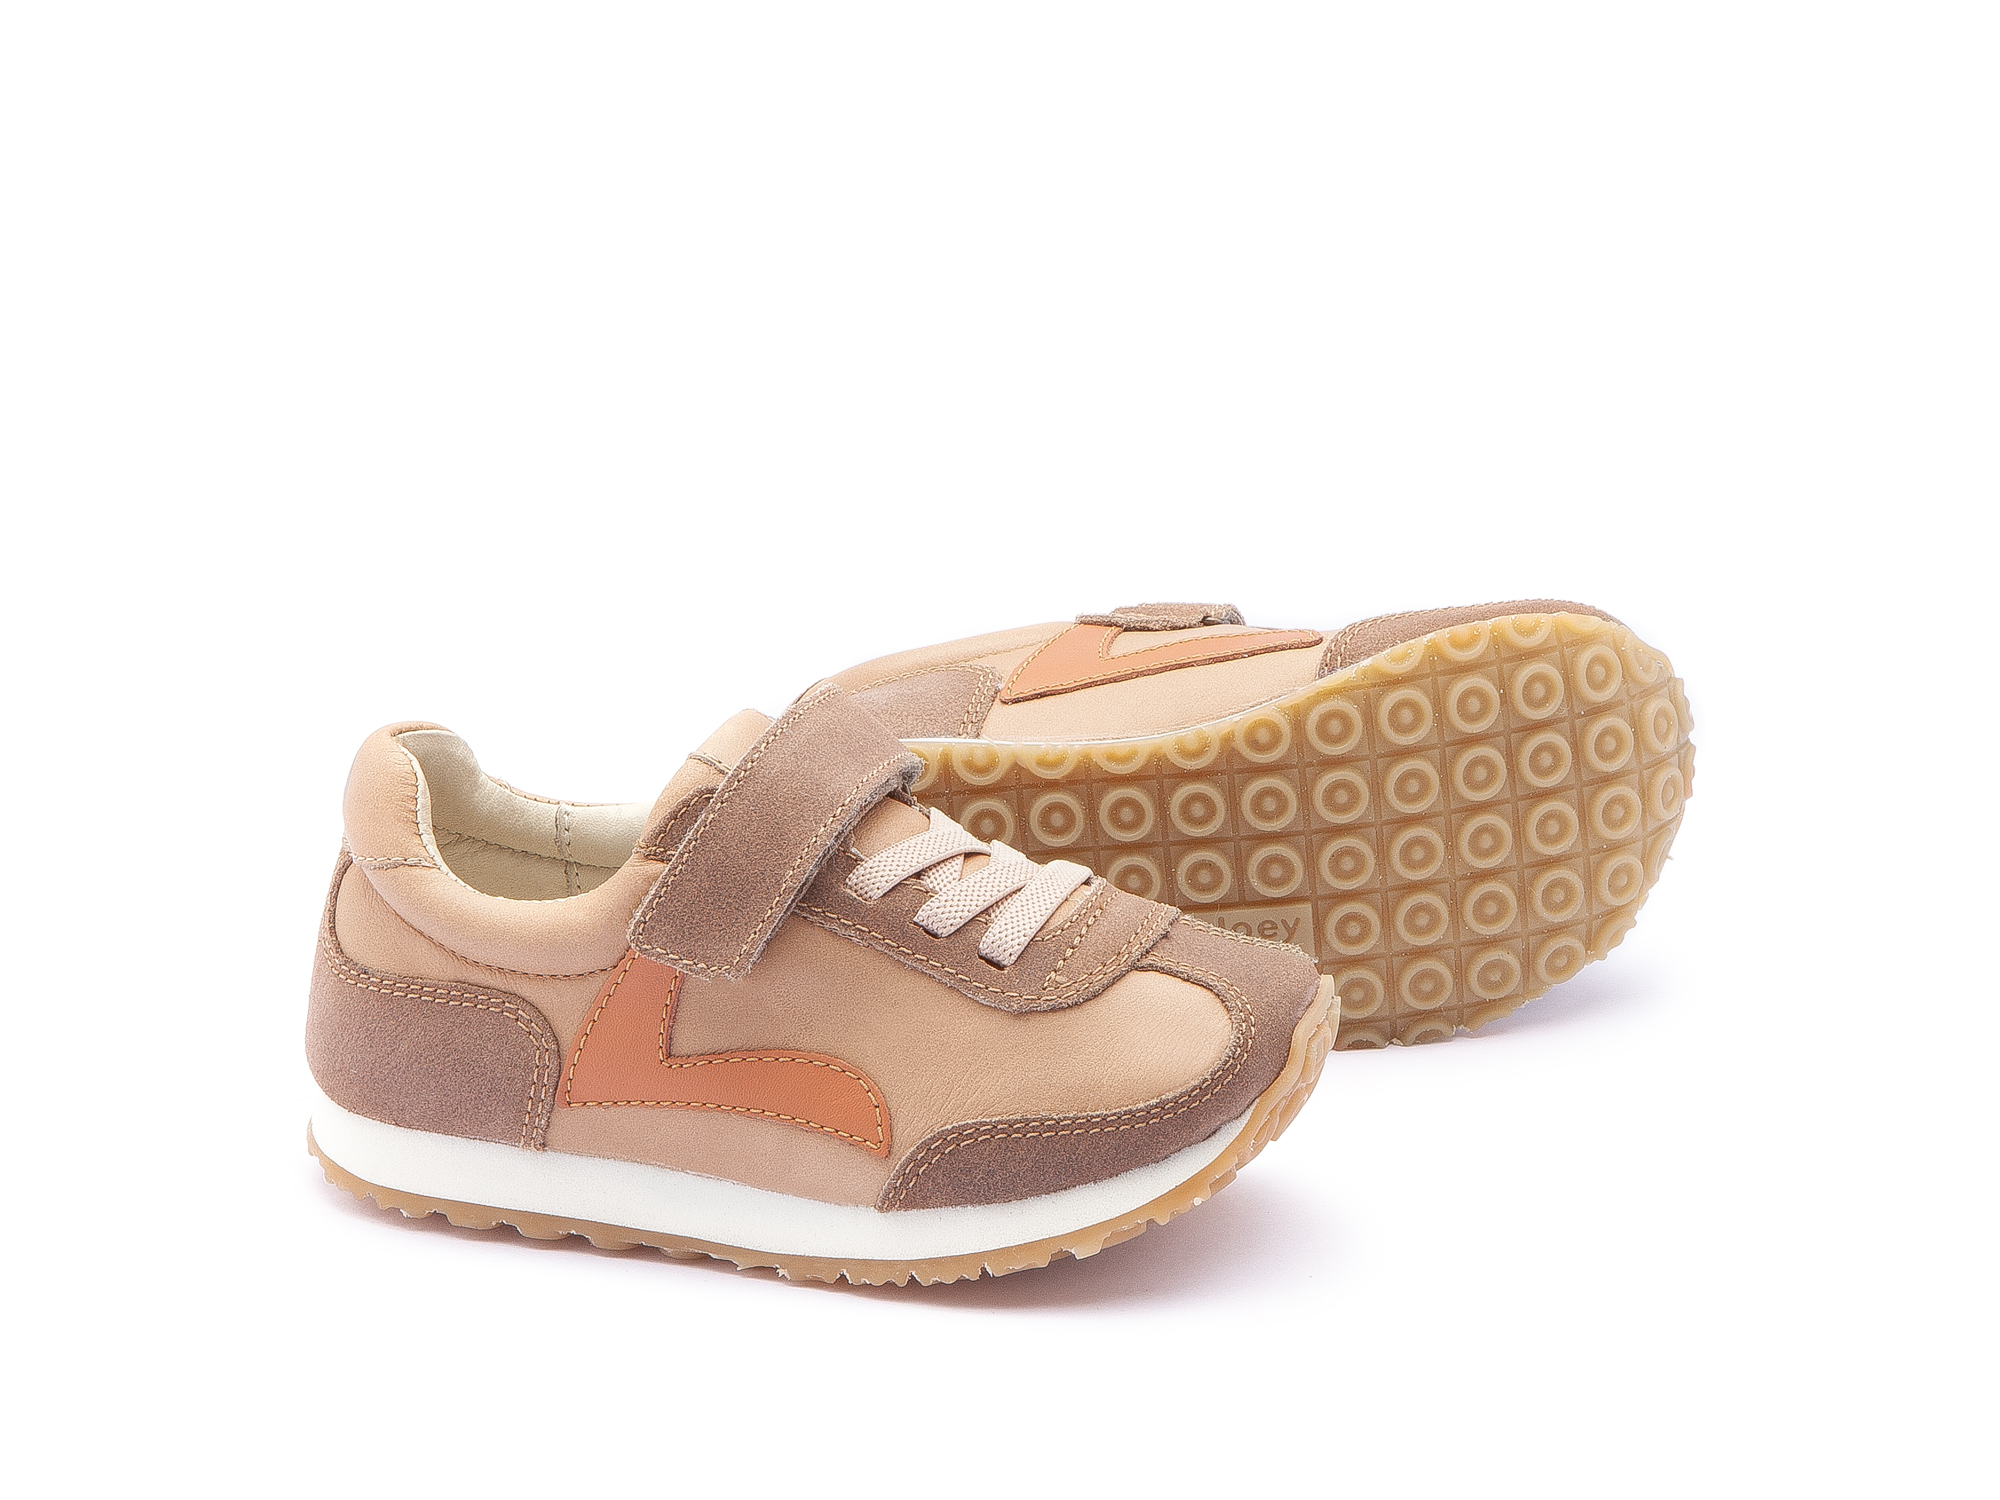 Tênis Little Start Sand/ Dry Tan Suede Toddler 2 à 4 anos - 2